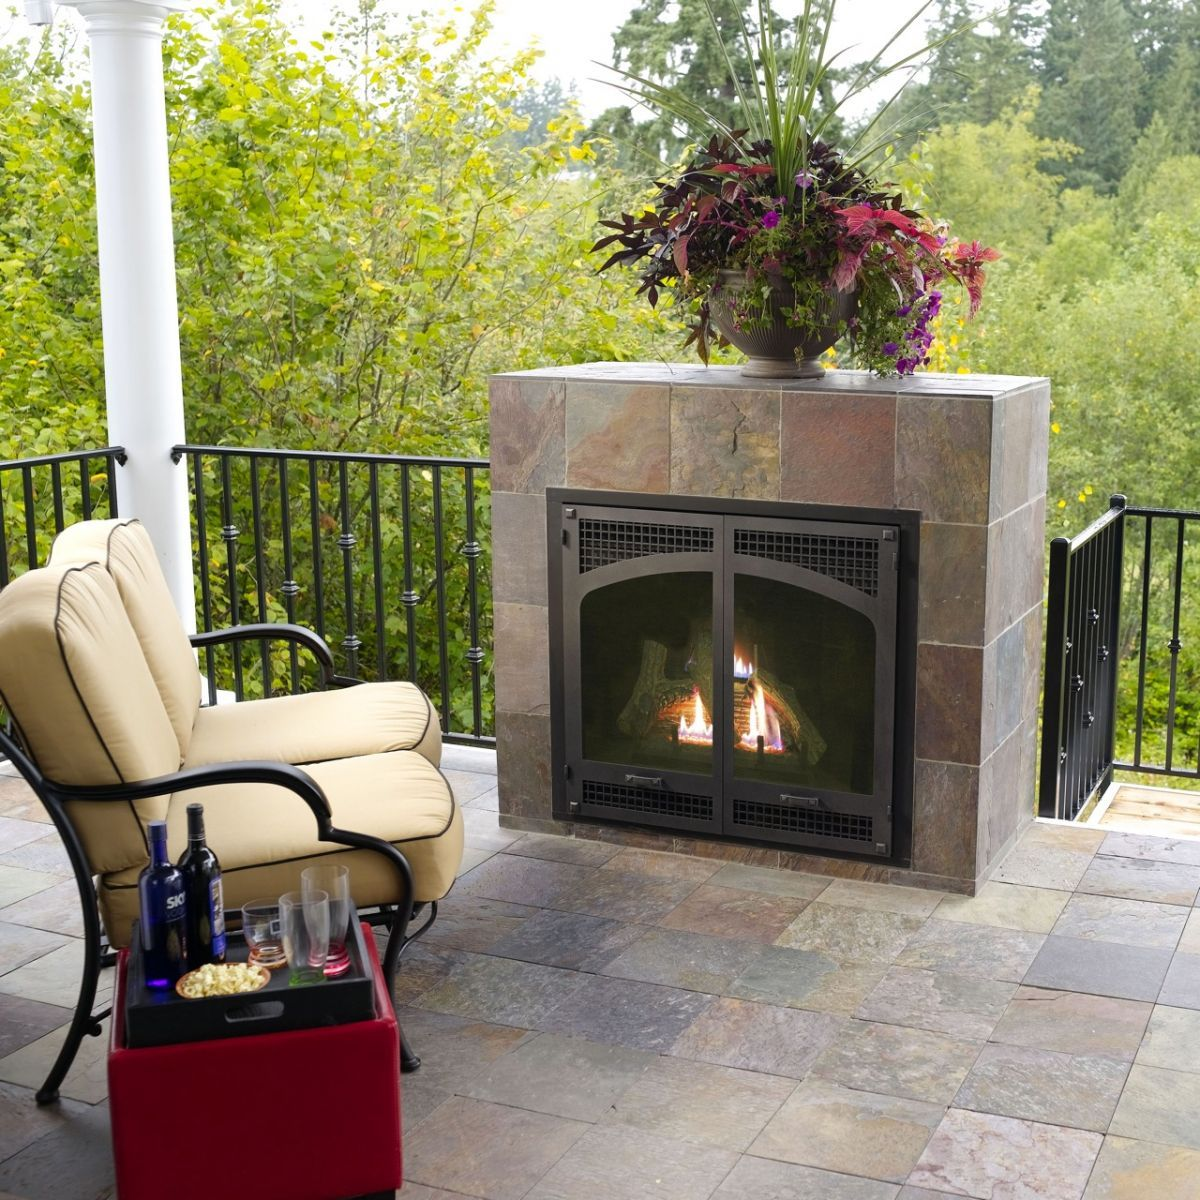 Pin By Rachel Bukey On Outdoor Room Outdoor Fire Pit Kits Small